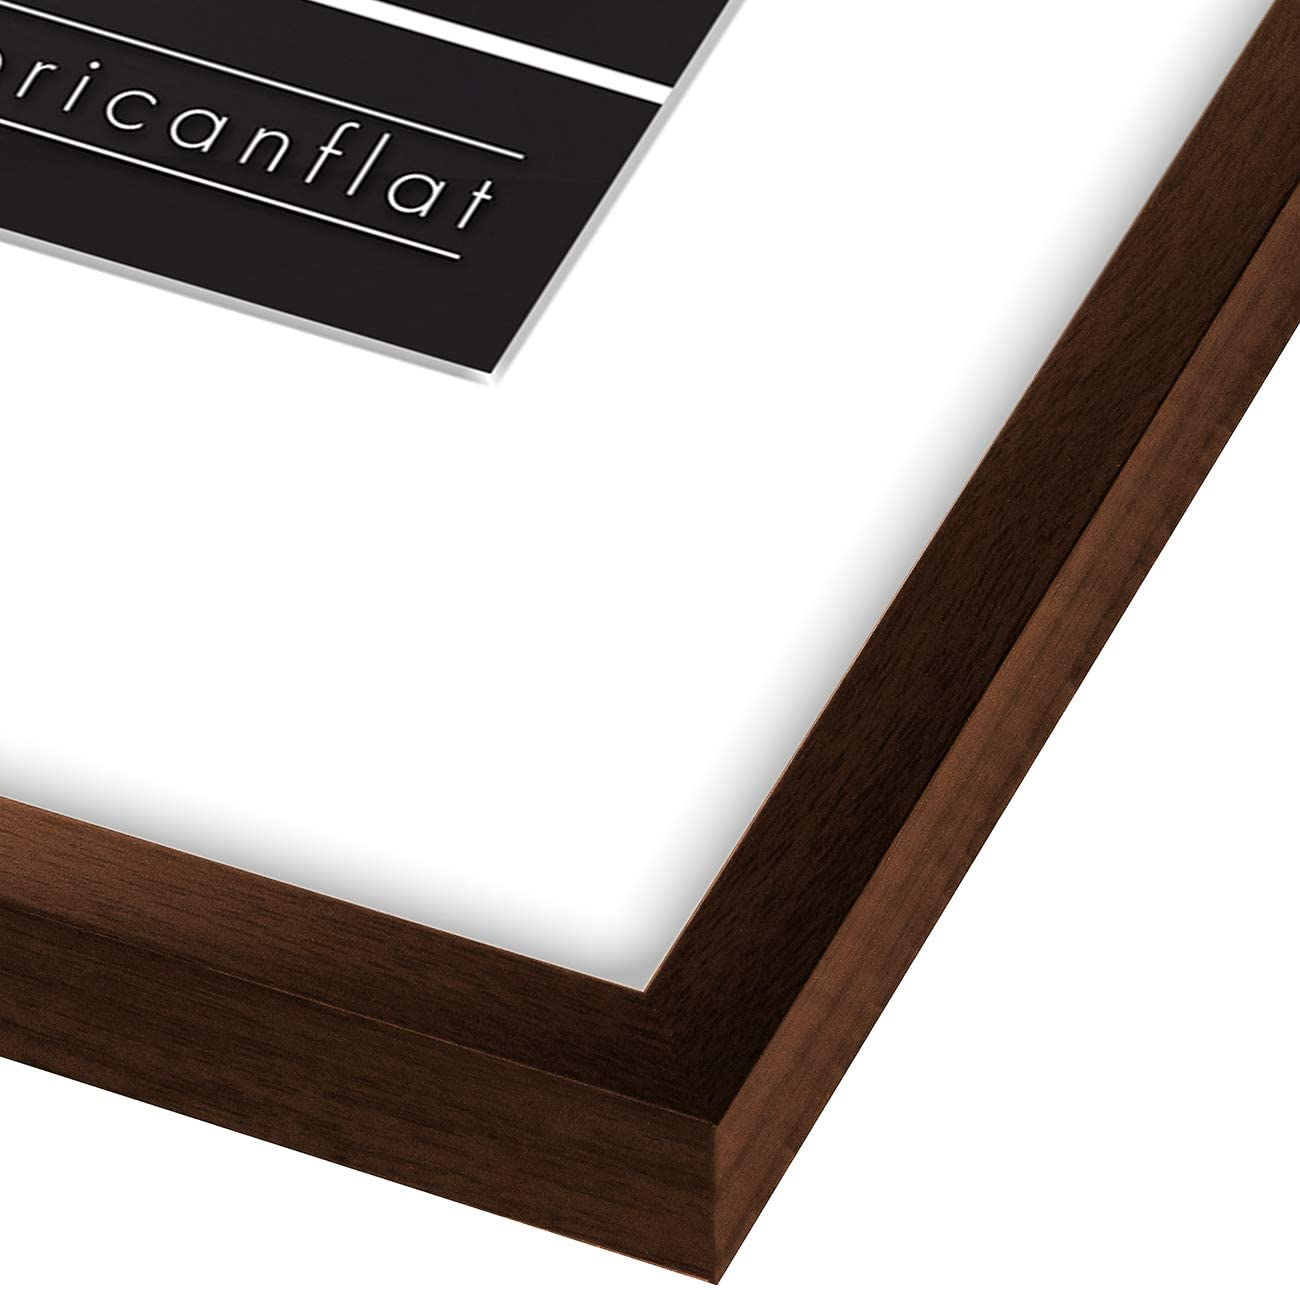 miniature 82 - Americanflat Thin Picture Frame 5x7 8x10 11x14 8.5x11 Wall Tabletop Pick Color